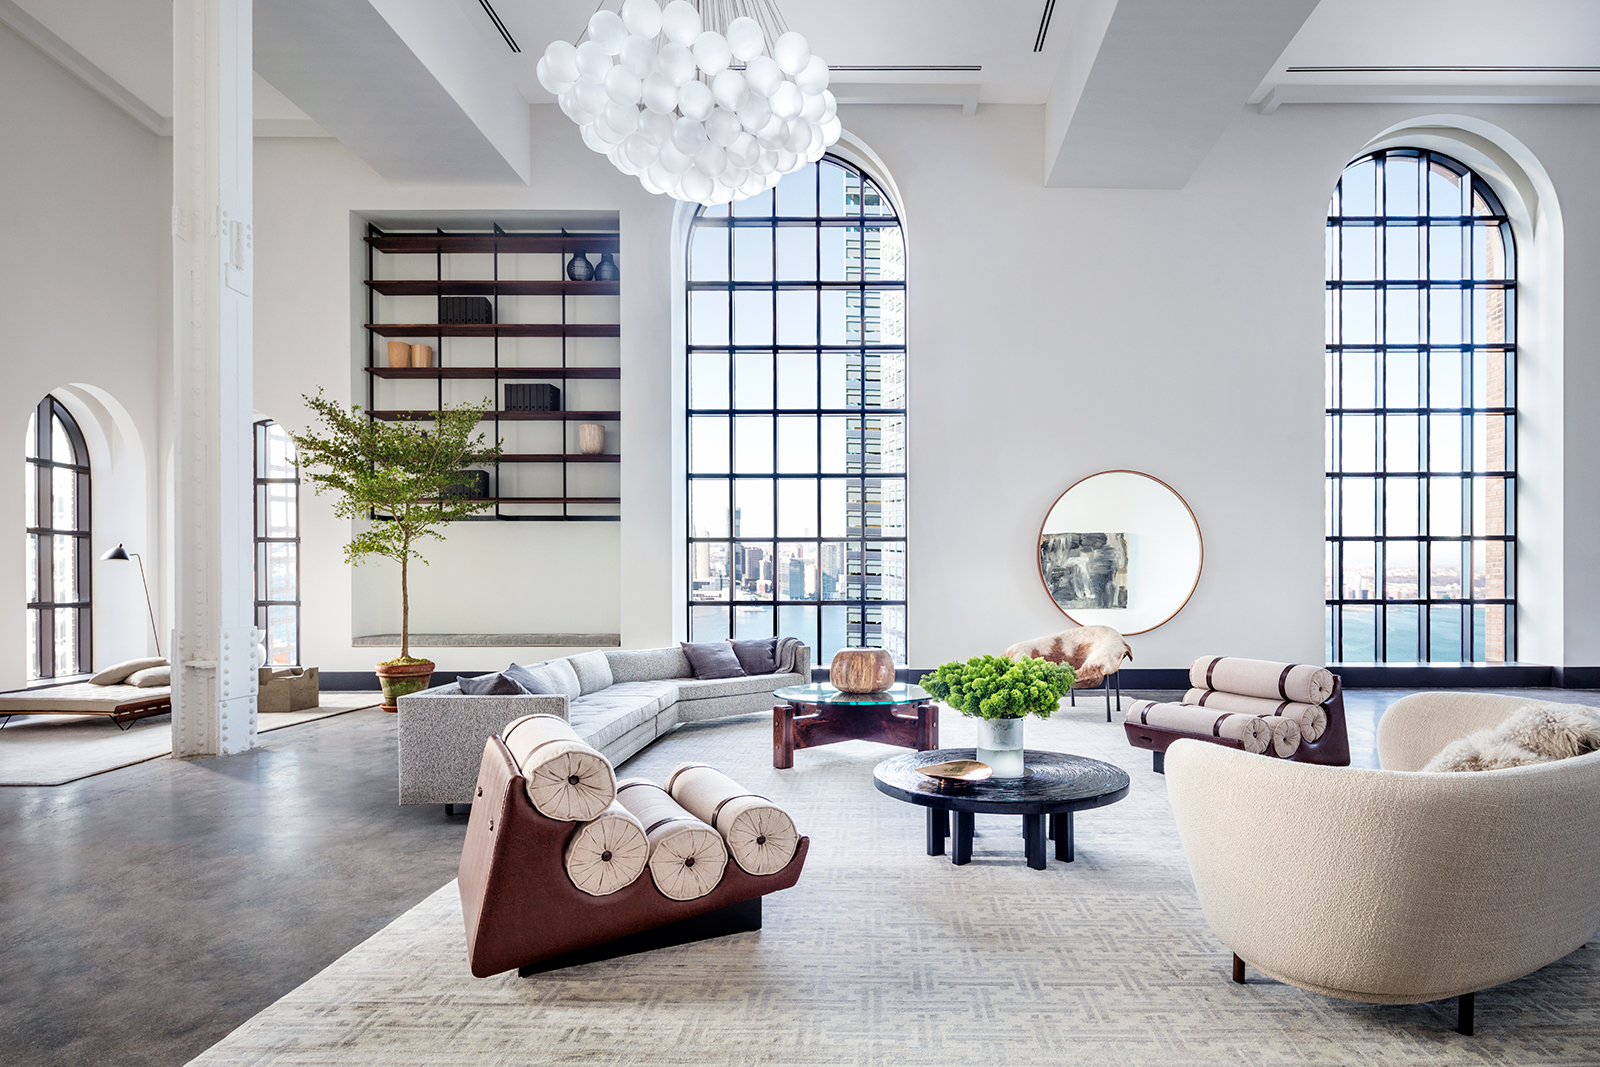 Lavish Penthouse Hits The Market At One Hundred Barclay For $39.95 Million